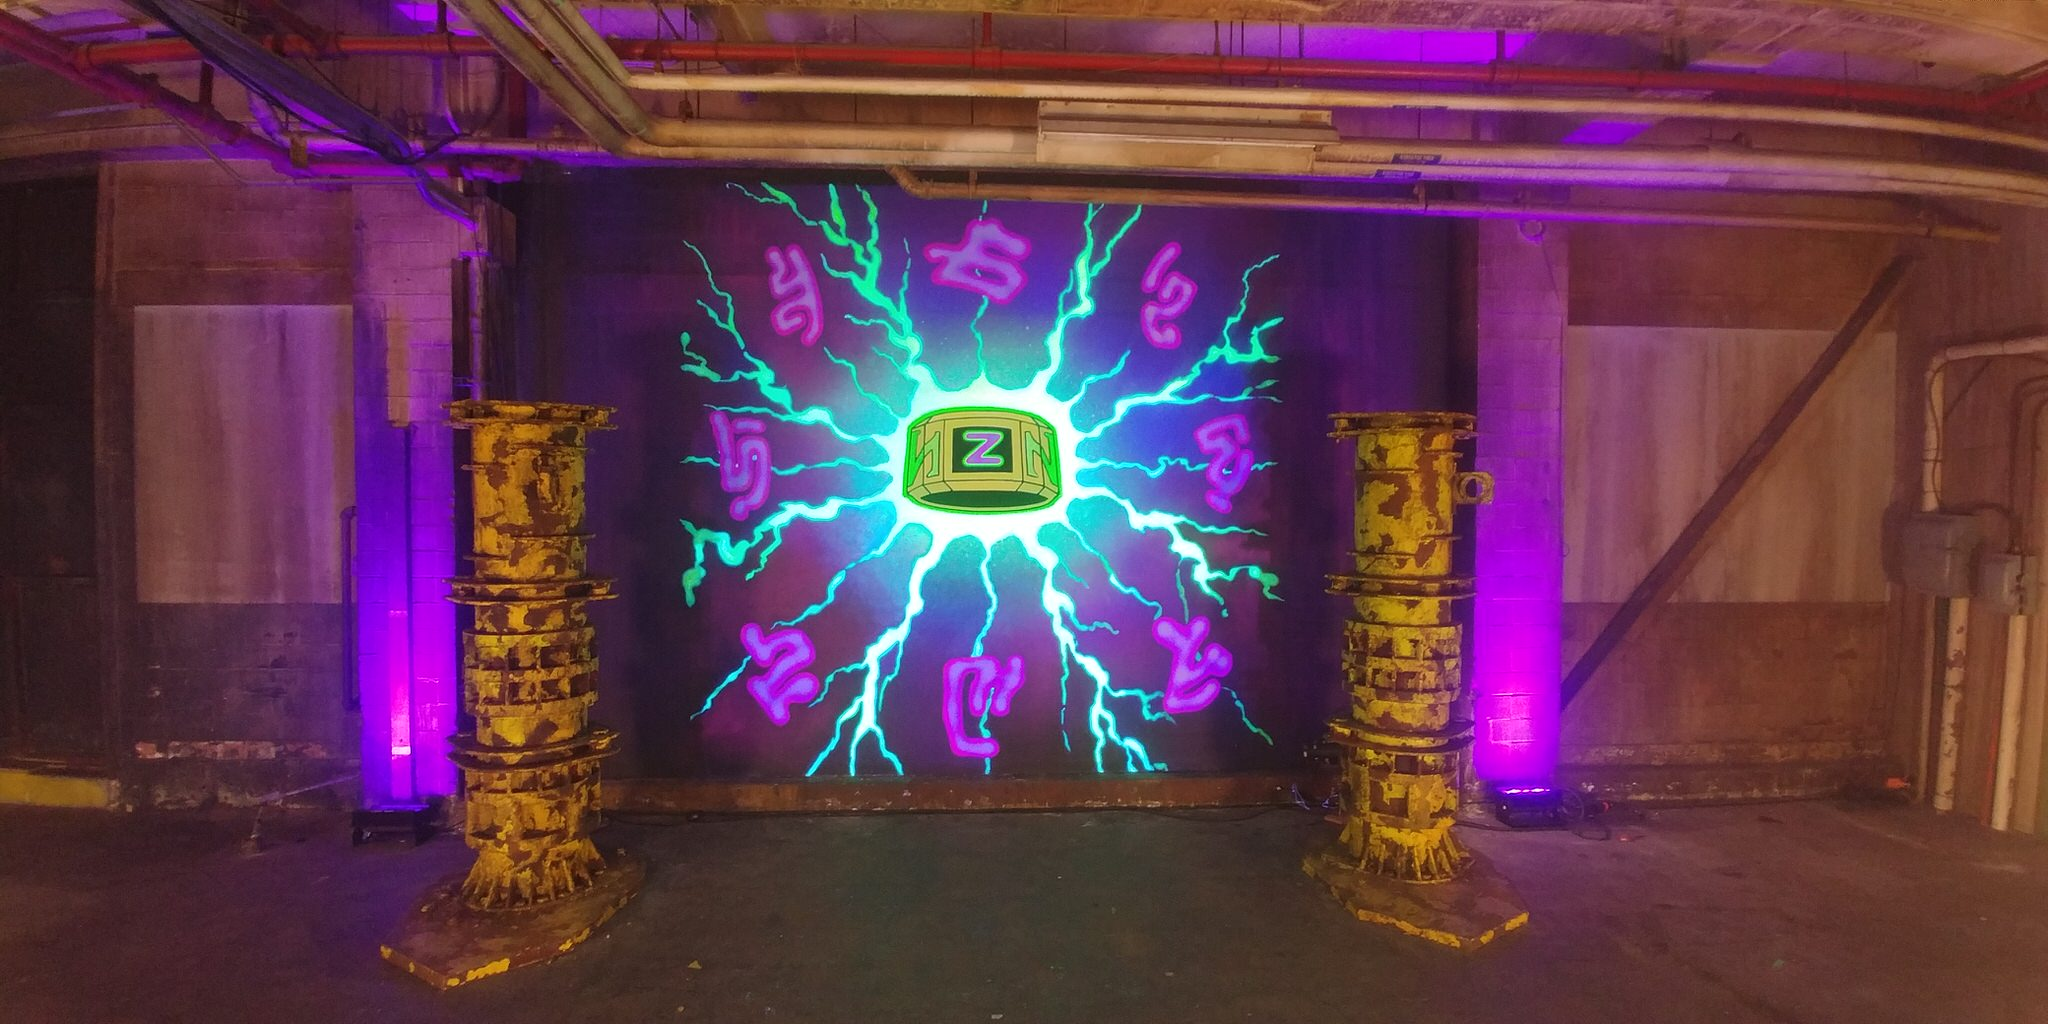 The Z-Band mural glowing in black light.